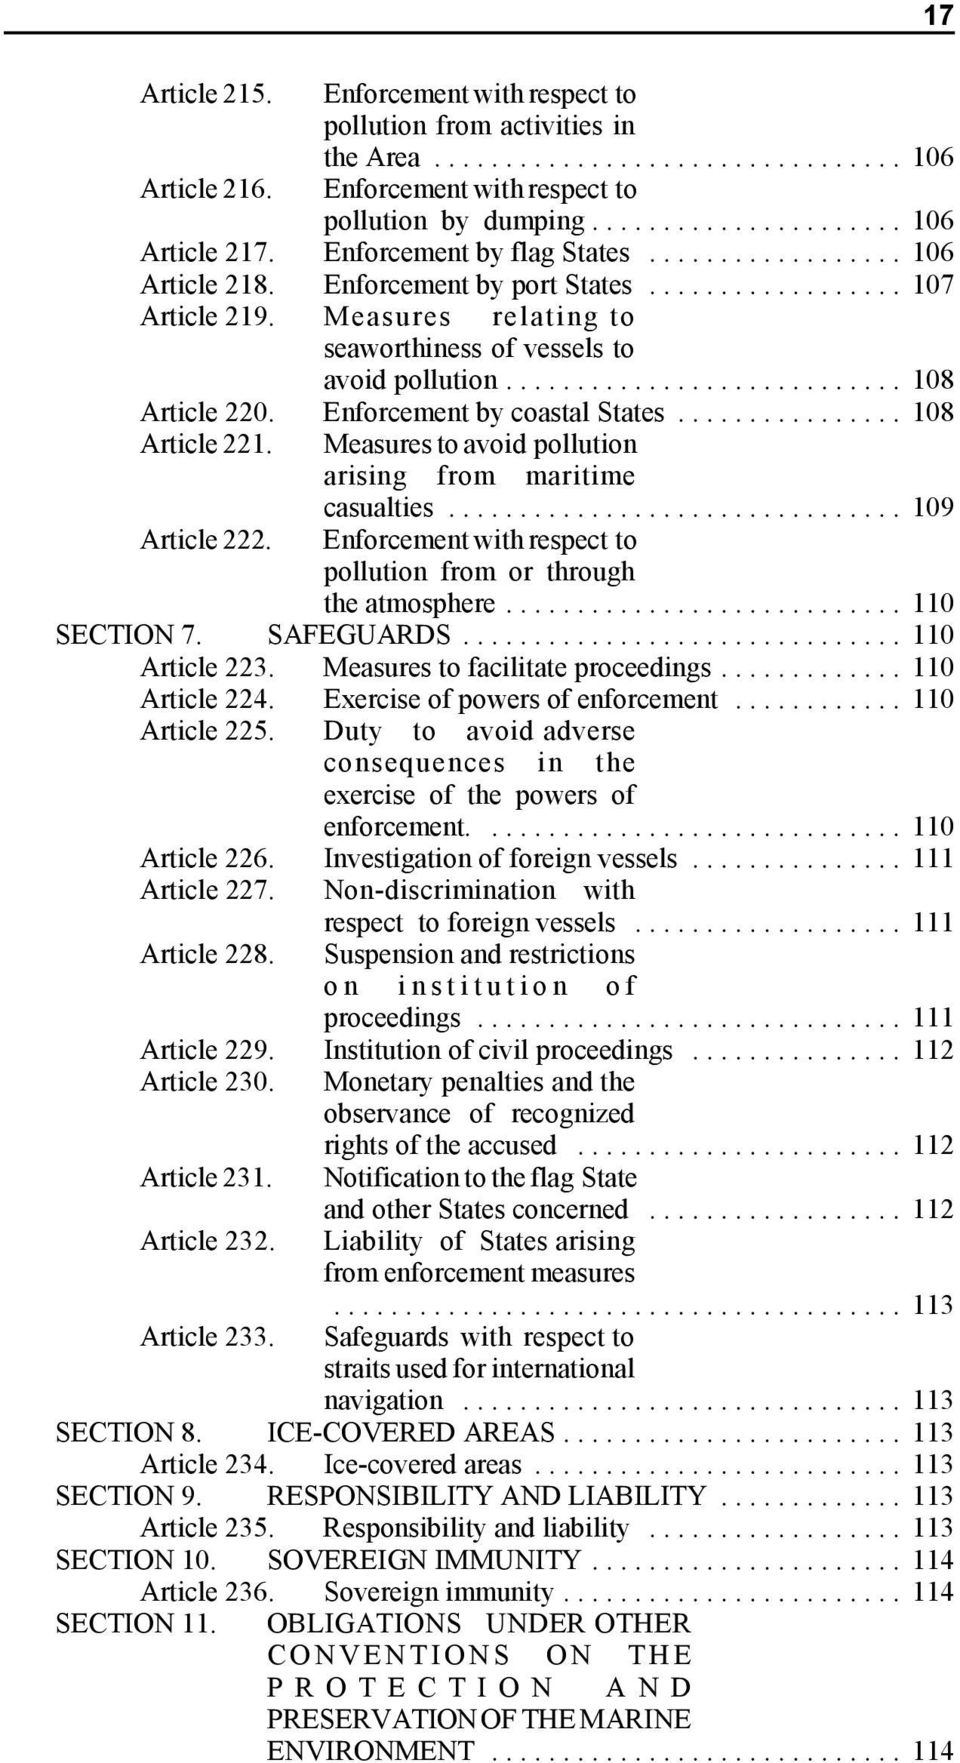 Article 222. Measures to avoid pollution arising from maritime casualties... 109 Enforcement with respect to pollution from or through the atmosphere... 110 SECTION 7. SAFEGUARDS... 110 Article 223.